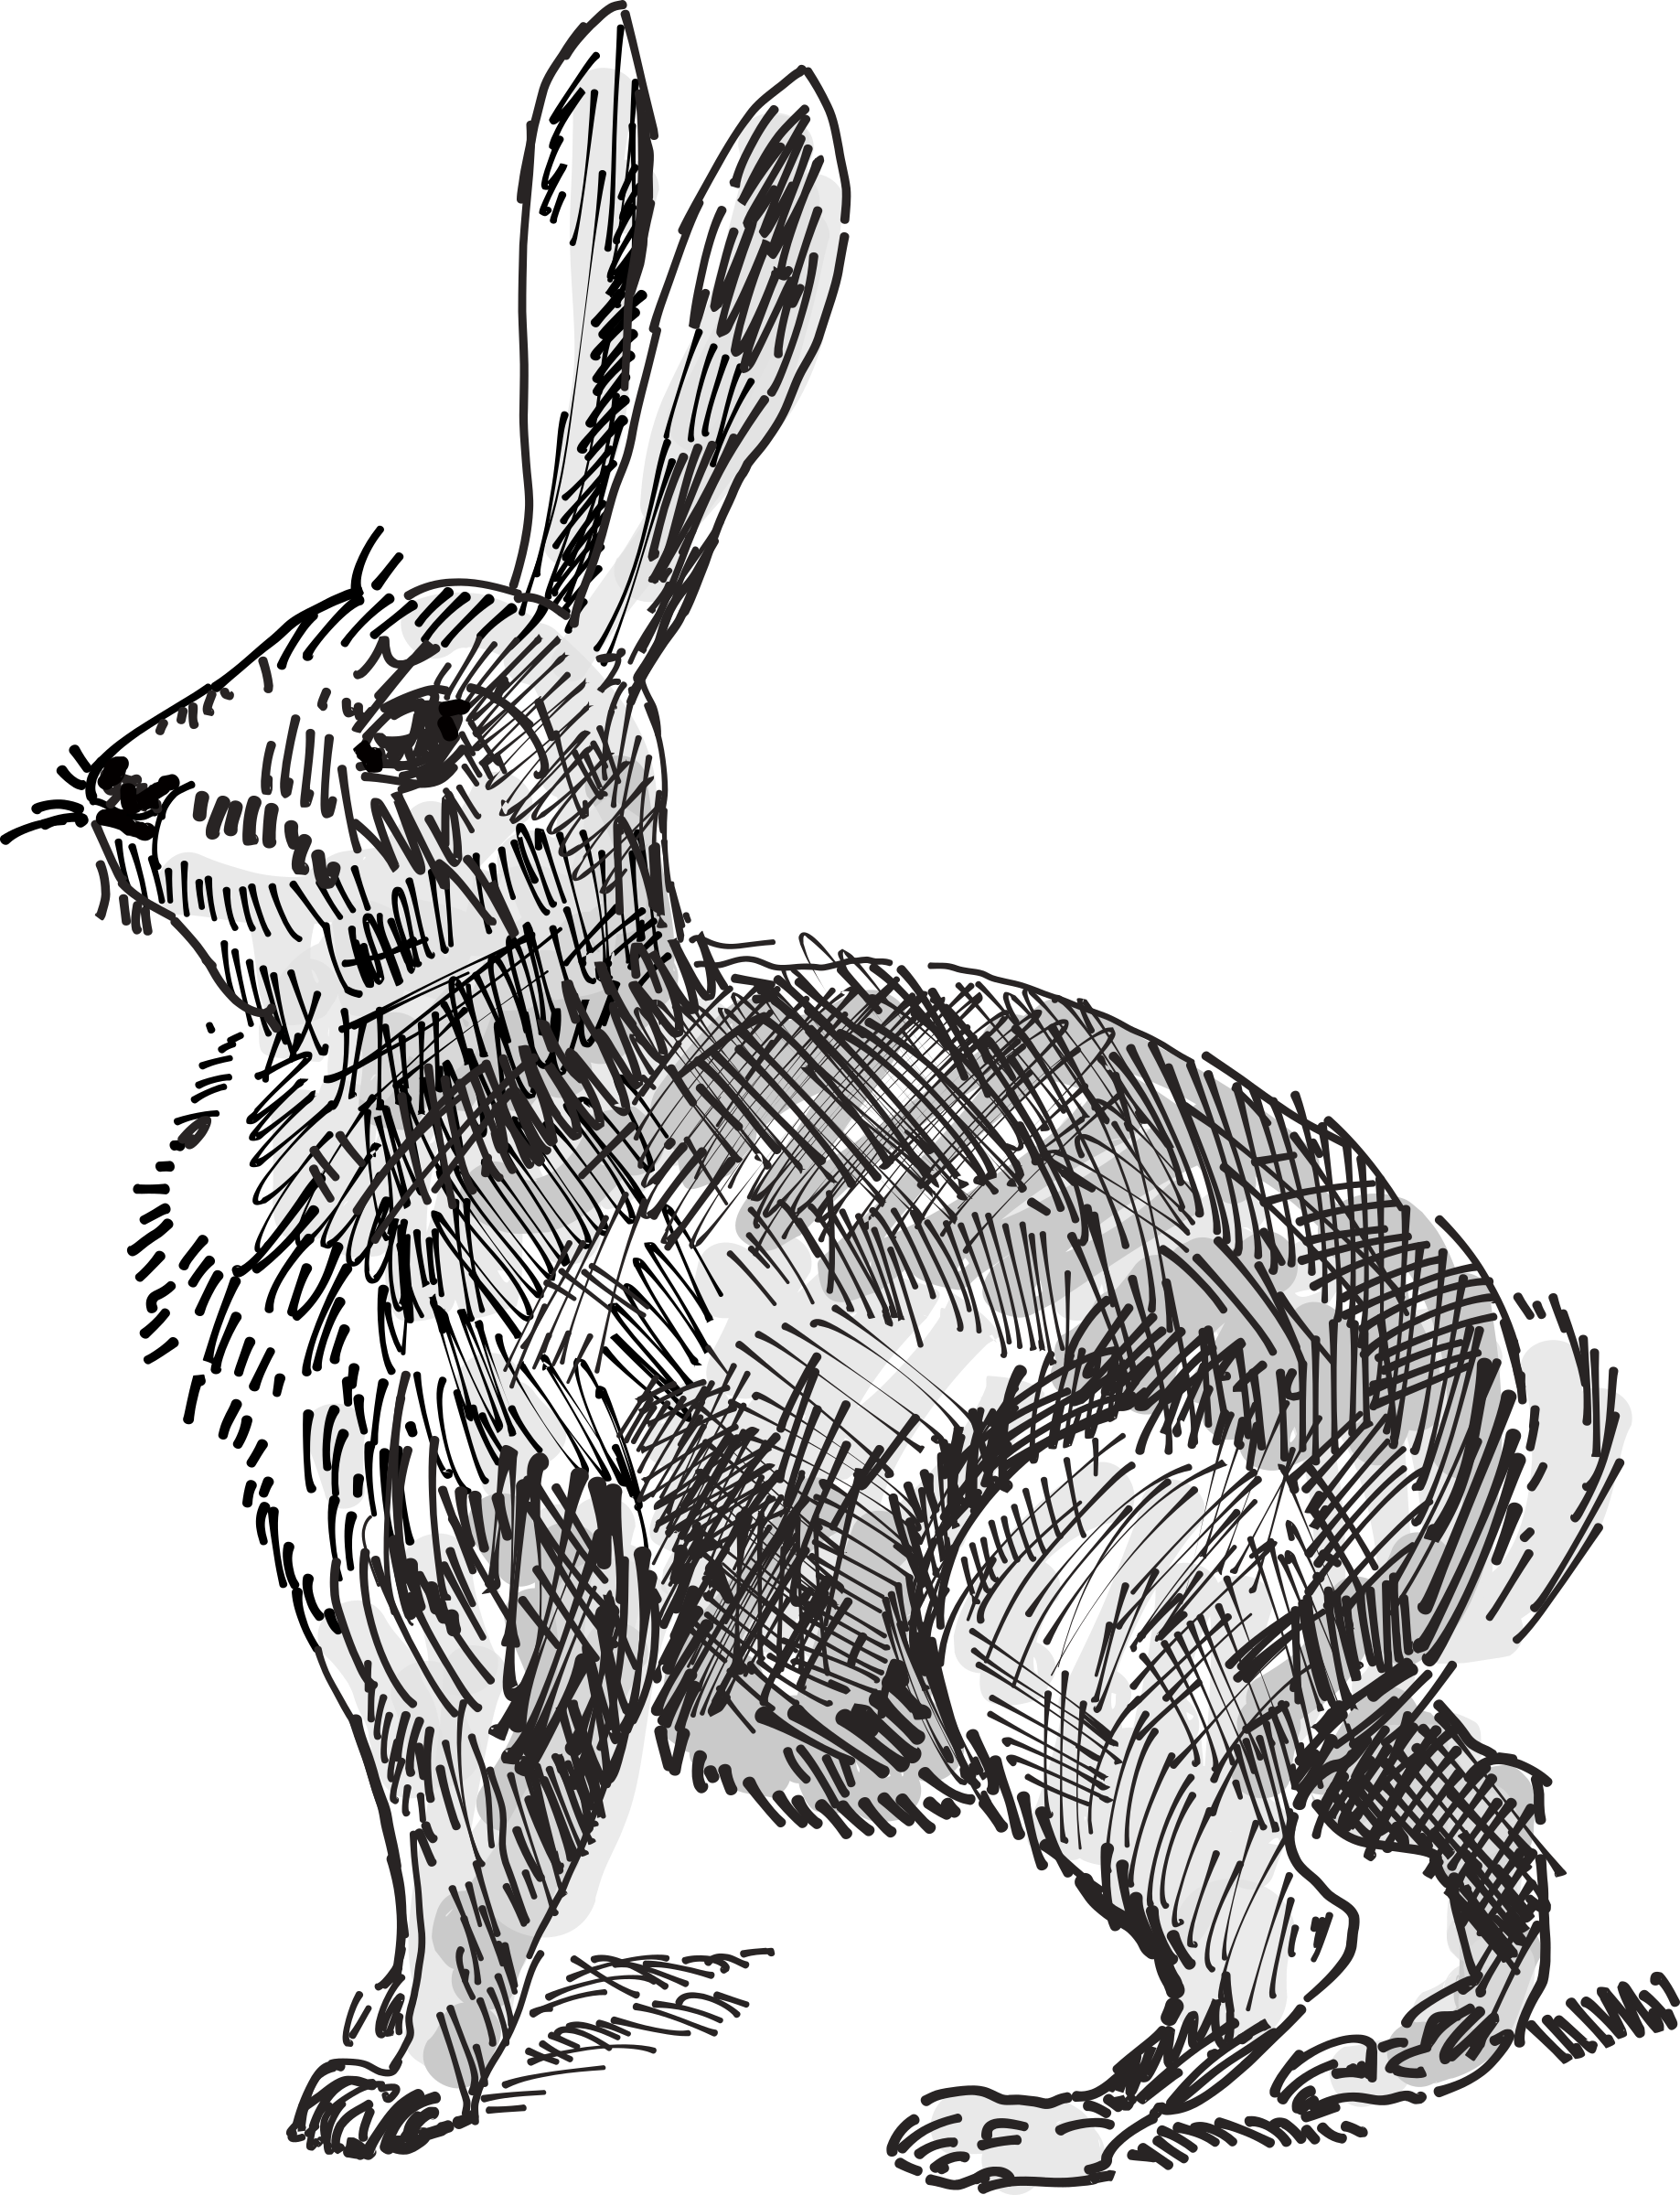 Clipart Rabbit Sketch Clipart Rabbit Sketch Transparent Free For Download On Webstockreview 2020